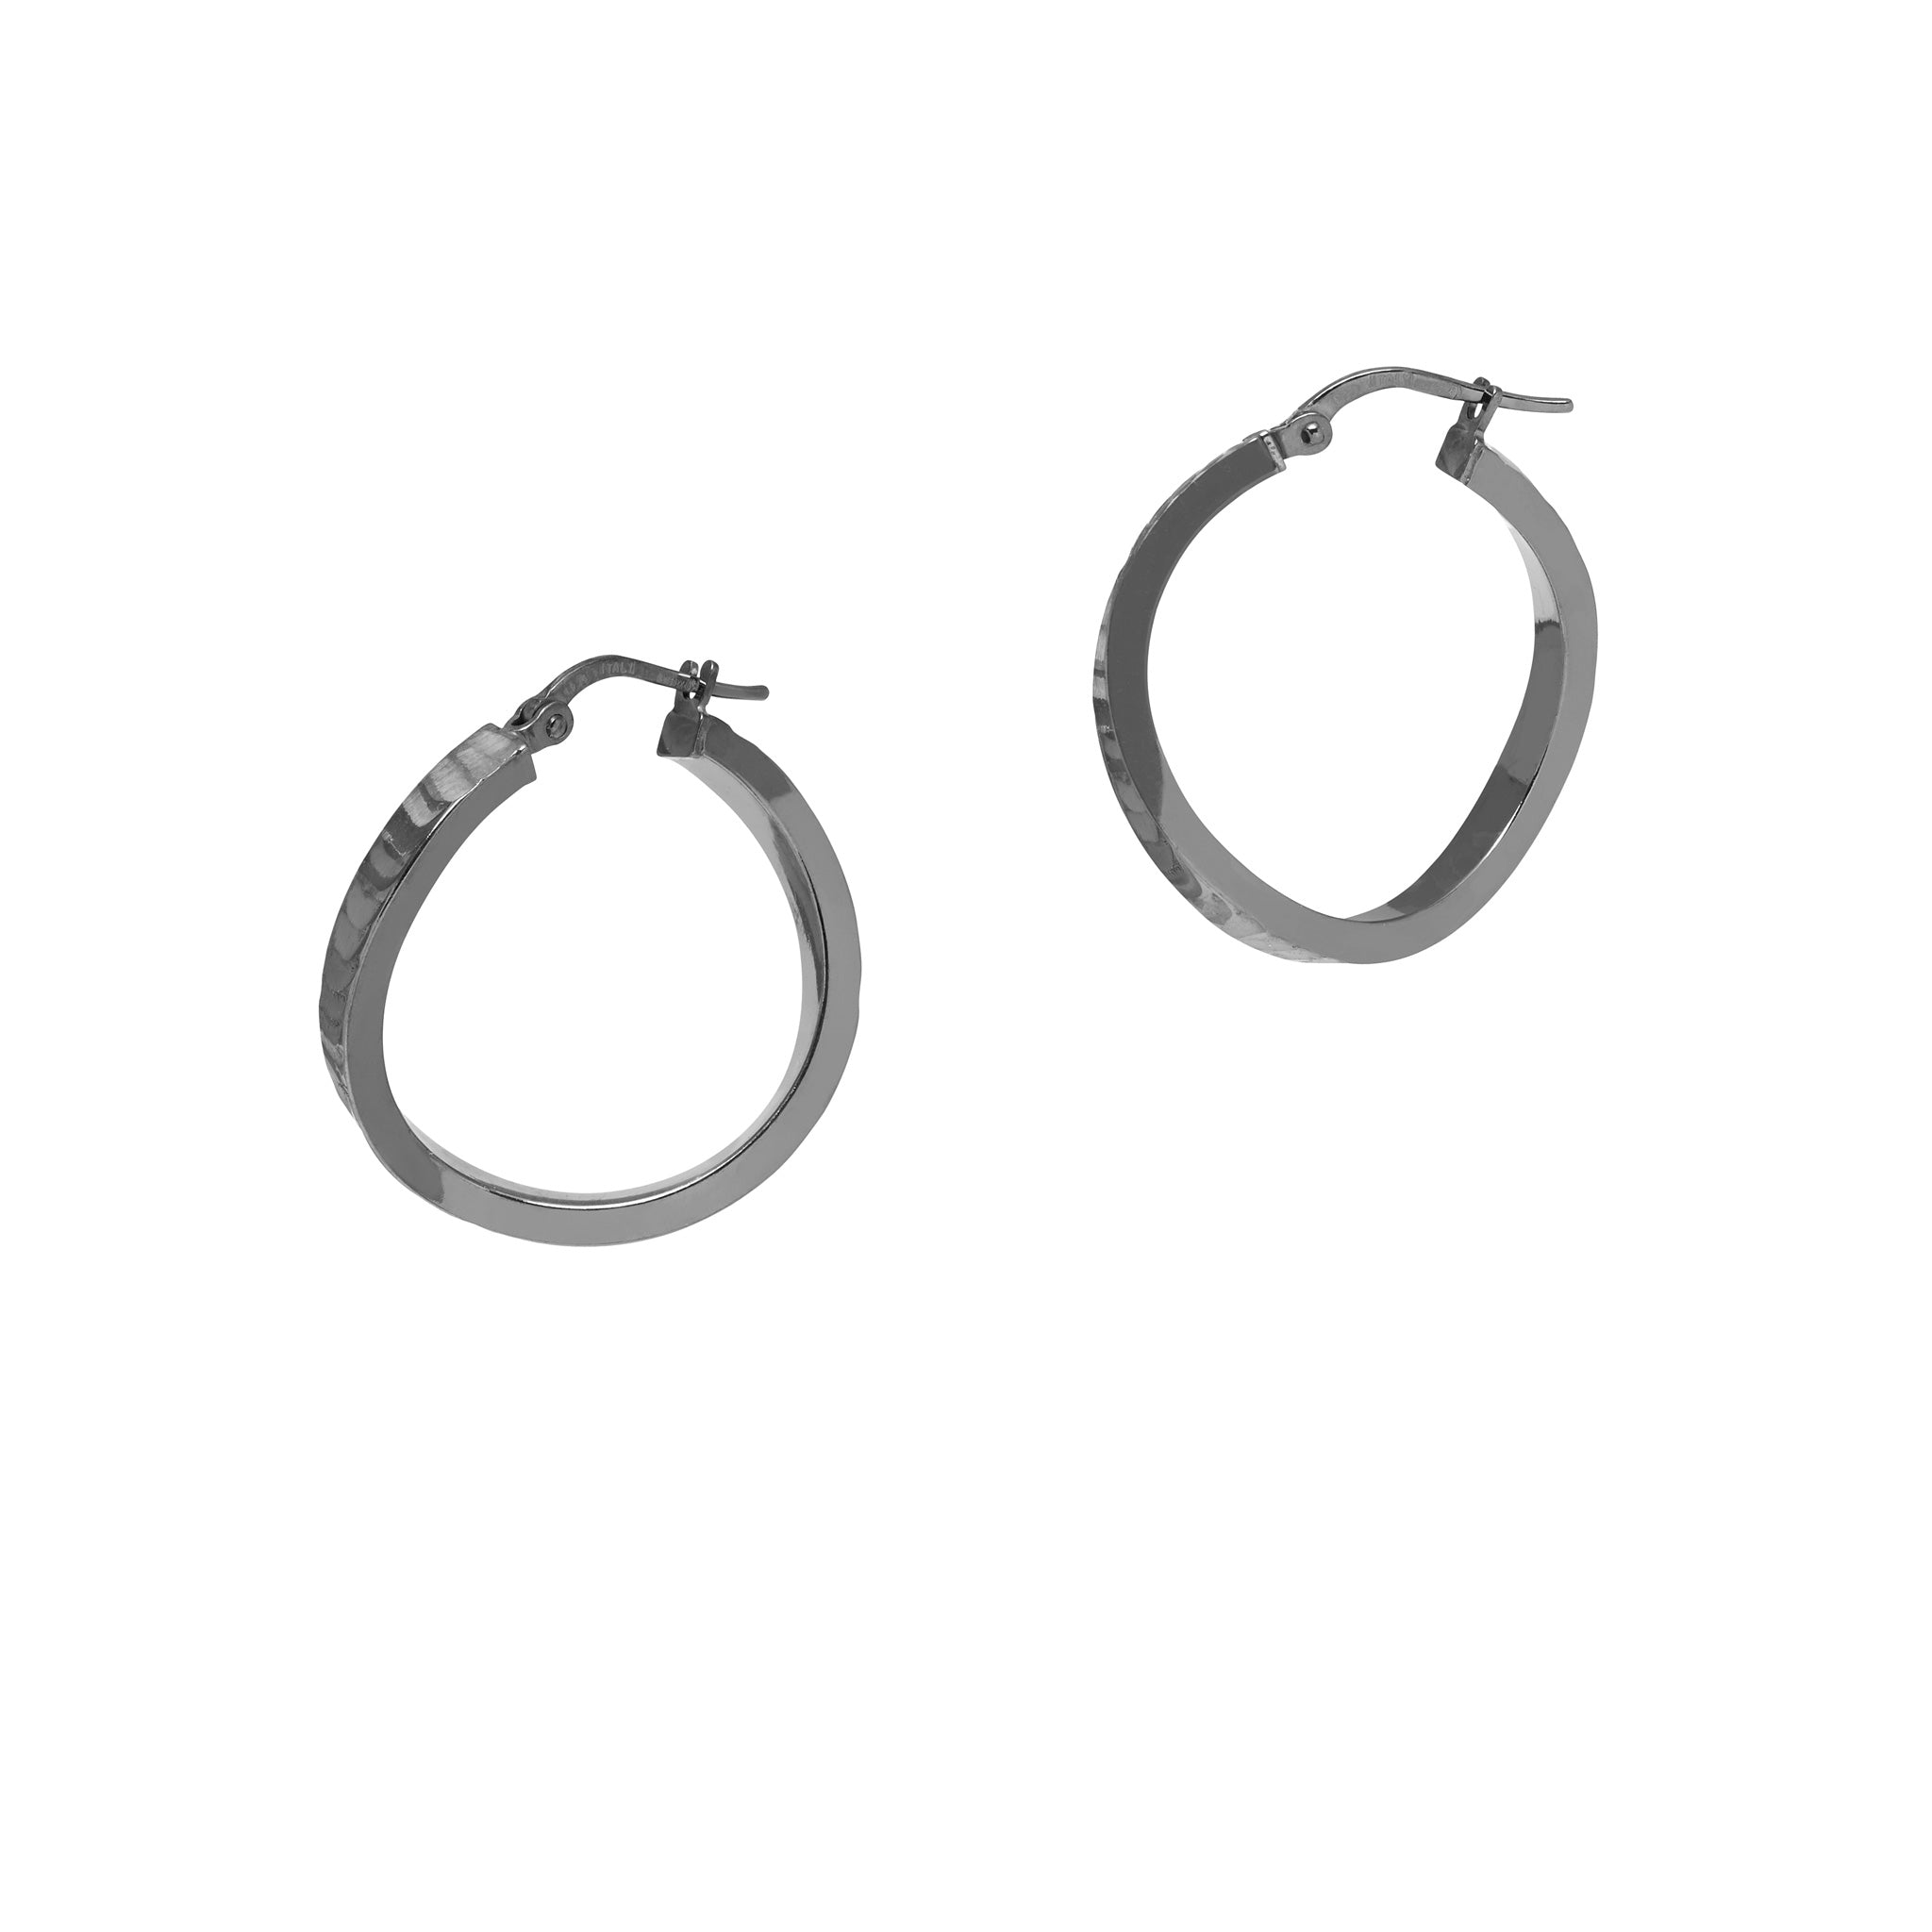 La MINI SERPENTE Hoops - Black Rhutenio - The Hoop Station 925 Sterling Silver Hoop Earrings Gold Huggies